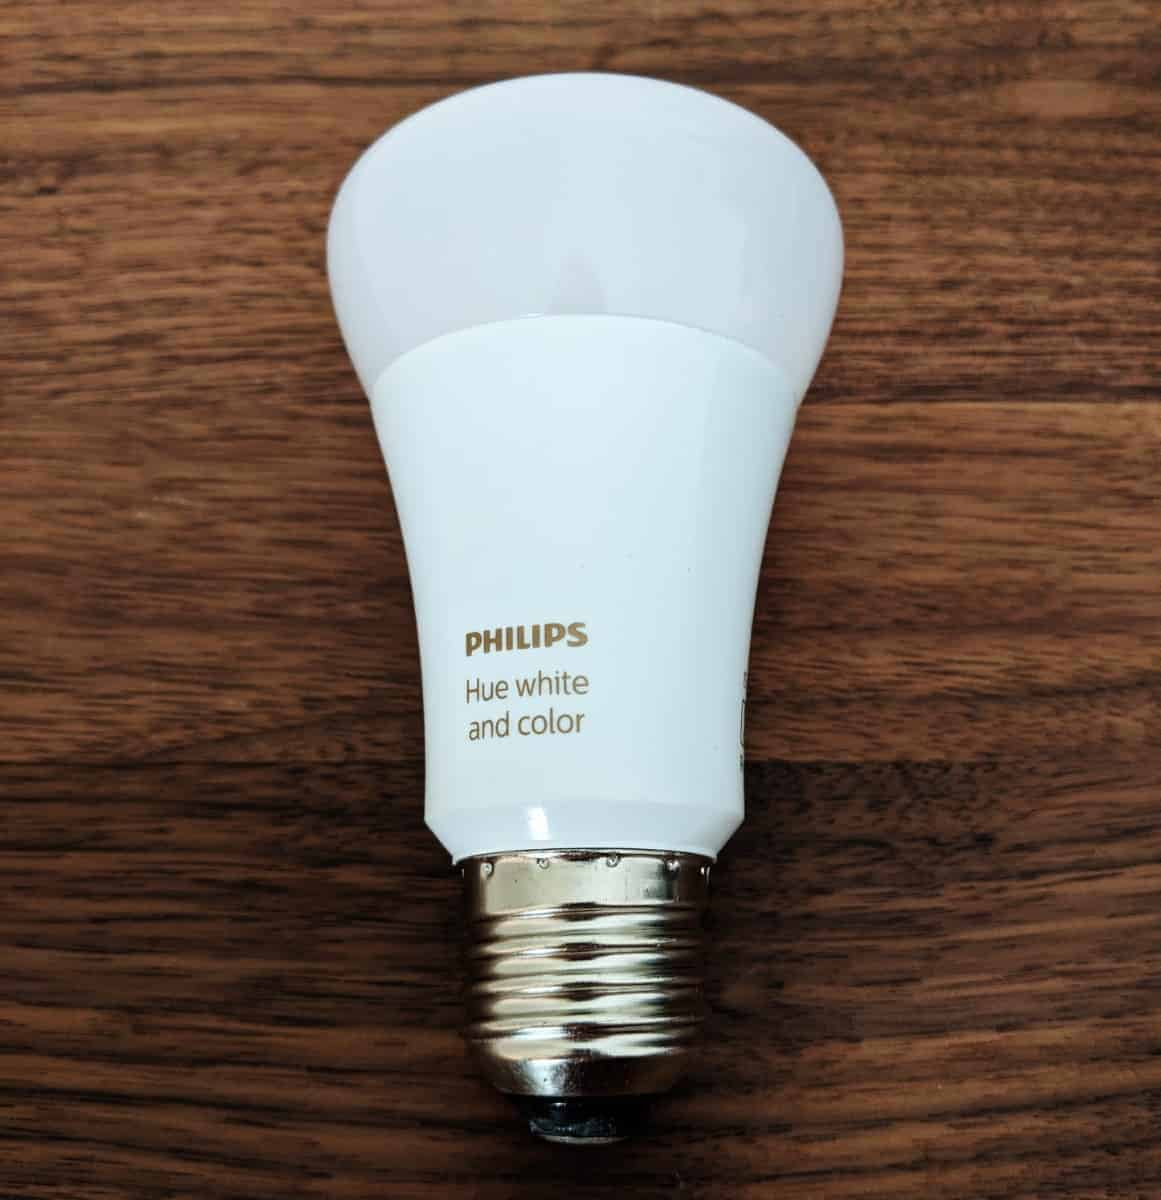 Philips-Hue-Starter-kit-Photos-08 Philips Hue Smart Lighting Review